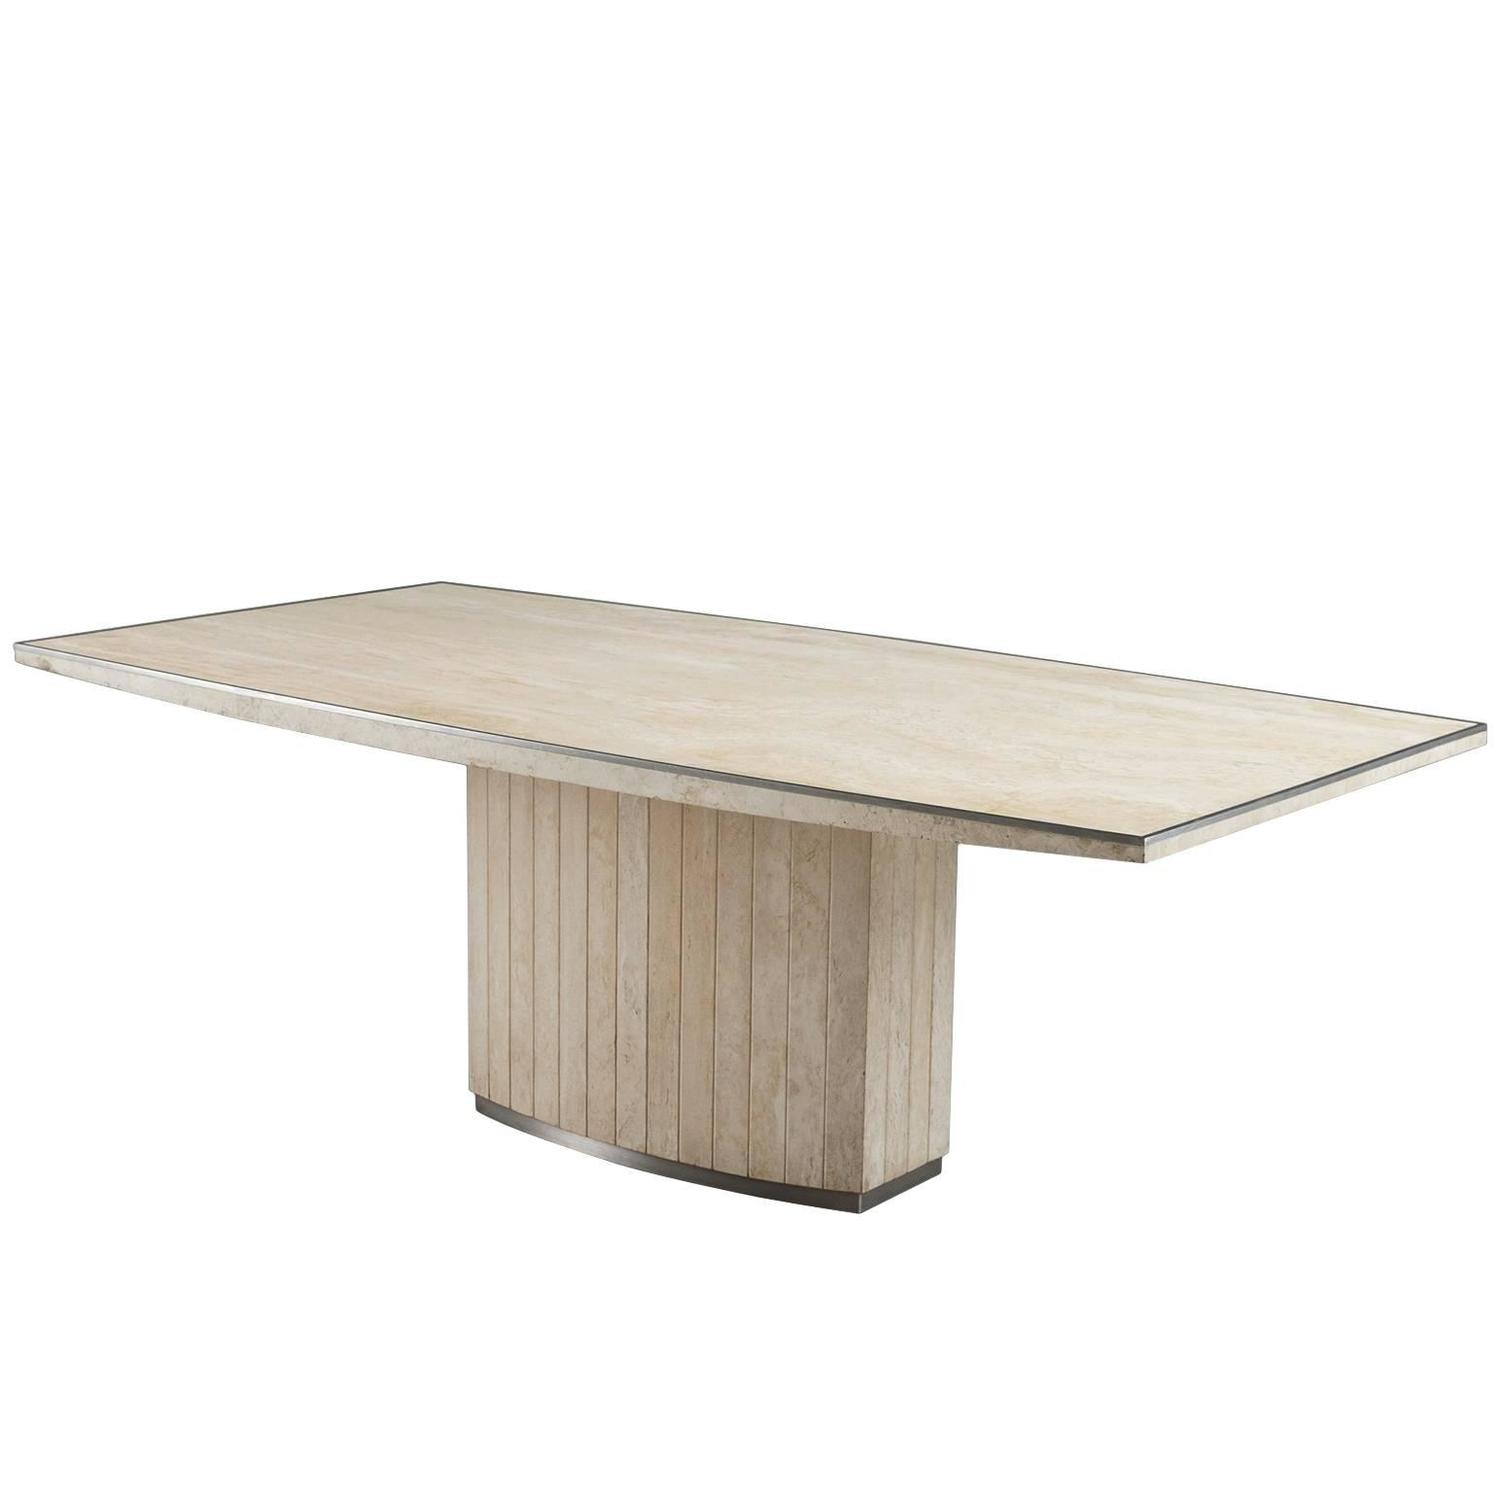 Travertine dining room table - Willy Rizzo Travertine Dining Table